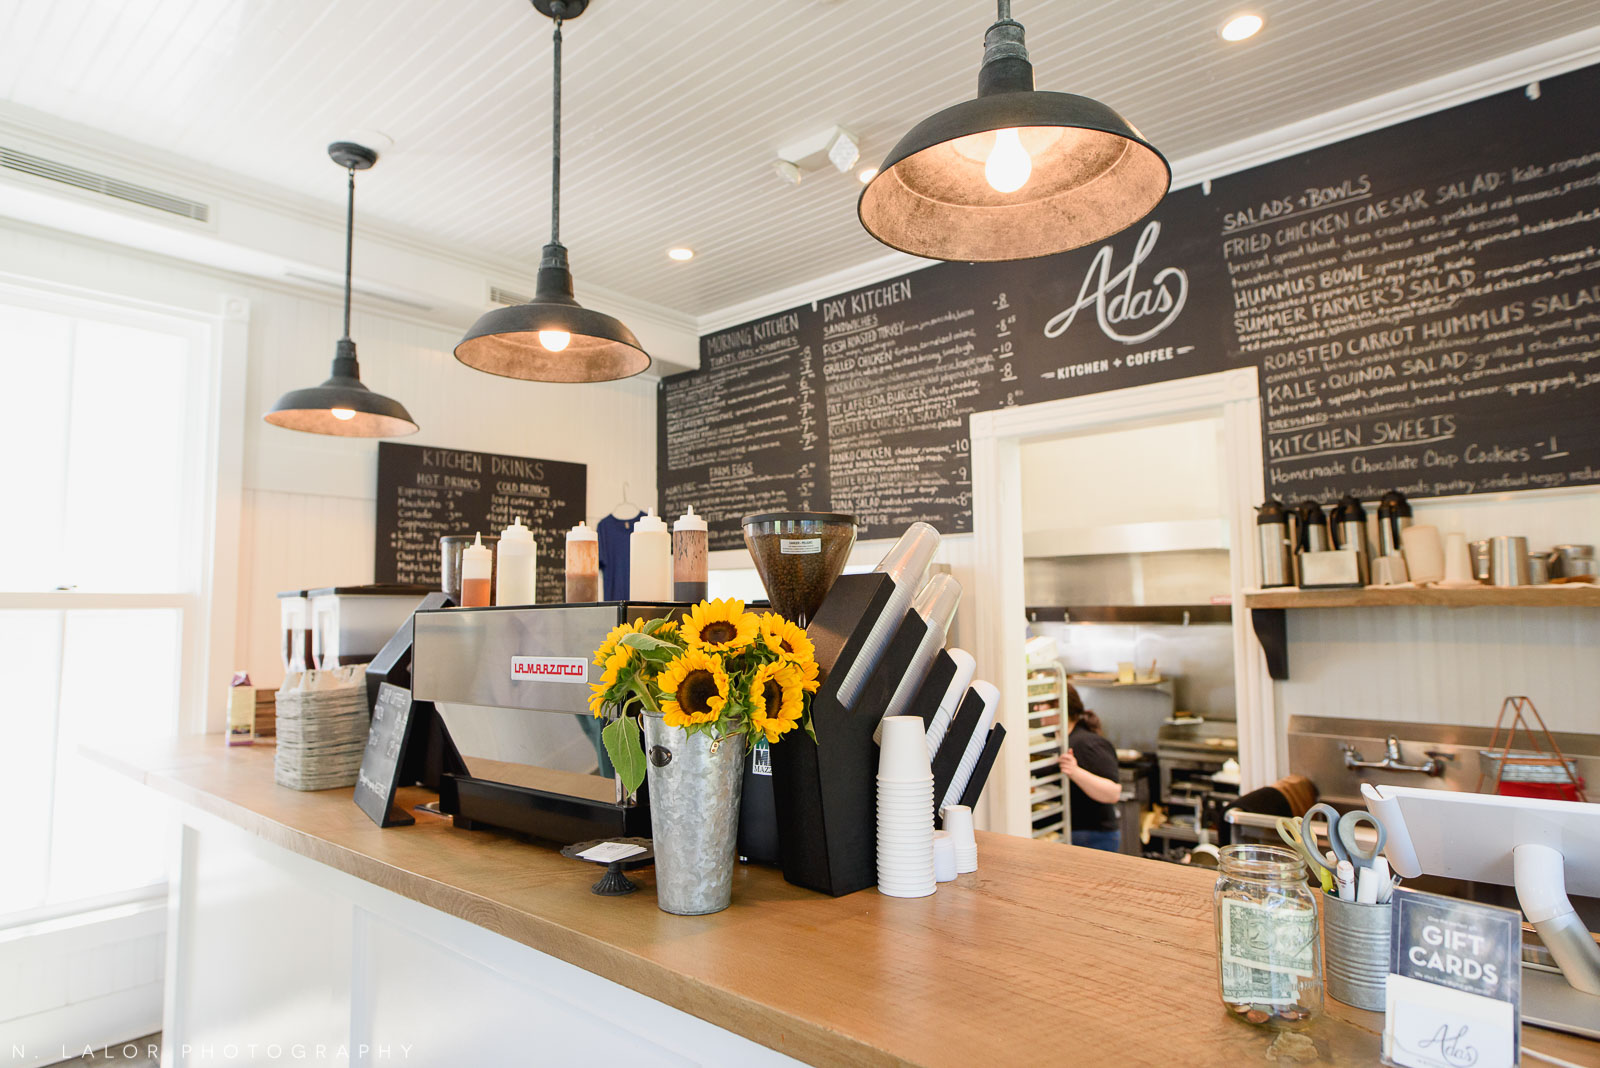 Interior. Ada's Kitchen + Coffee in Riverside, Connecticut. Image by N. Lalor Photography.